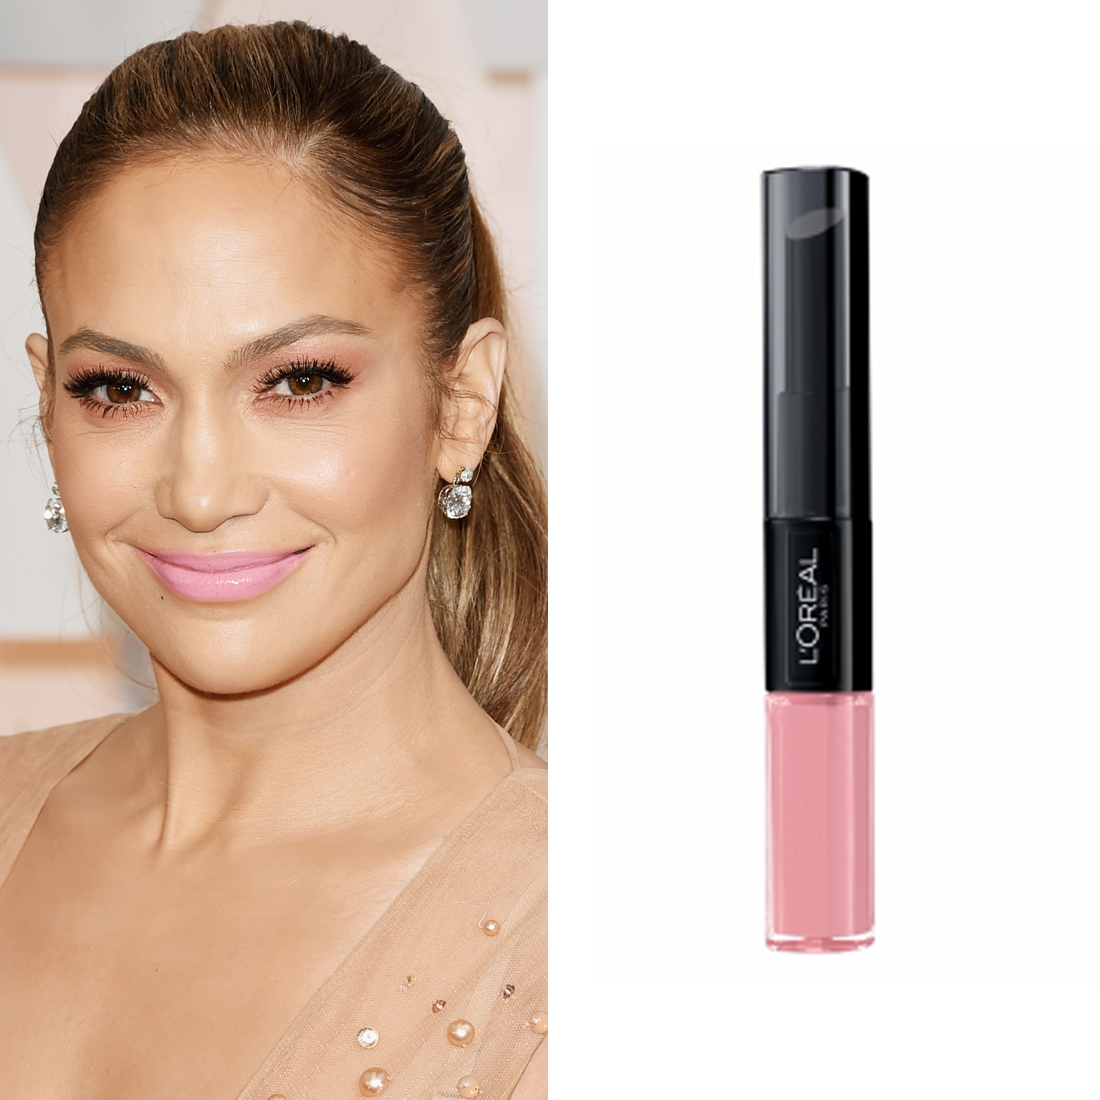 Jennifer Lopez at the Oscars      L'Oréal Paris Infallible Pro-Last Colour in Timeless Rose  ($29.95) was the pop of pink Mary Phillips added to turn Jennifer's bronze makeup palette into something worthy of a princess.  Image Source:  Getty    Read More     Oscars Beauty  Celebrity Beauty  Jennifer Lopez  Award Season  Beauty Shopping  Oscars  Golden Globe Awards  L'Oreal Paris  Red Carpet